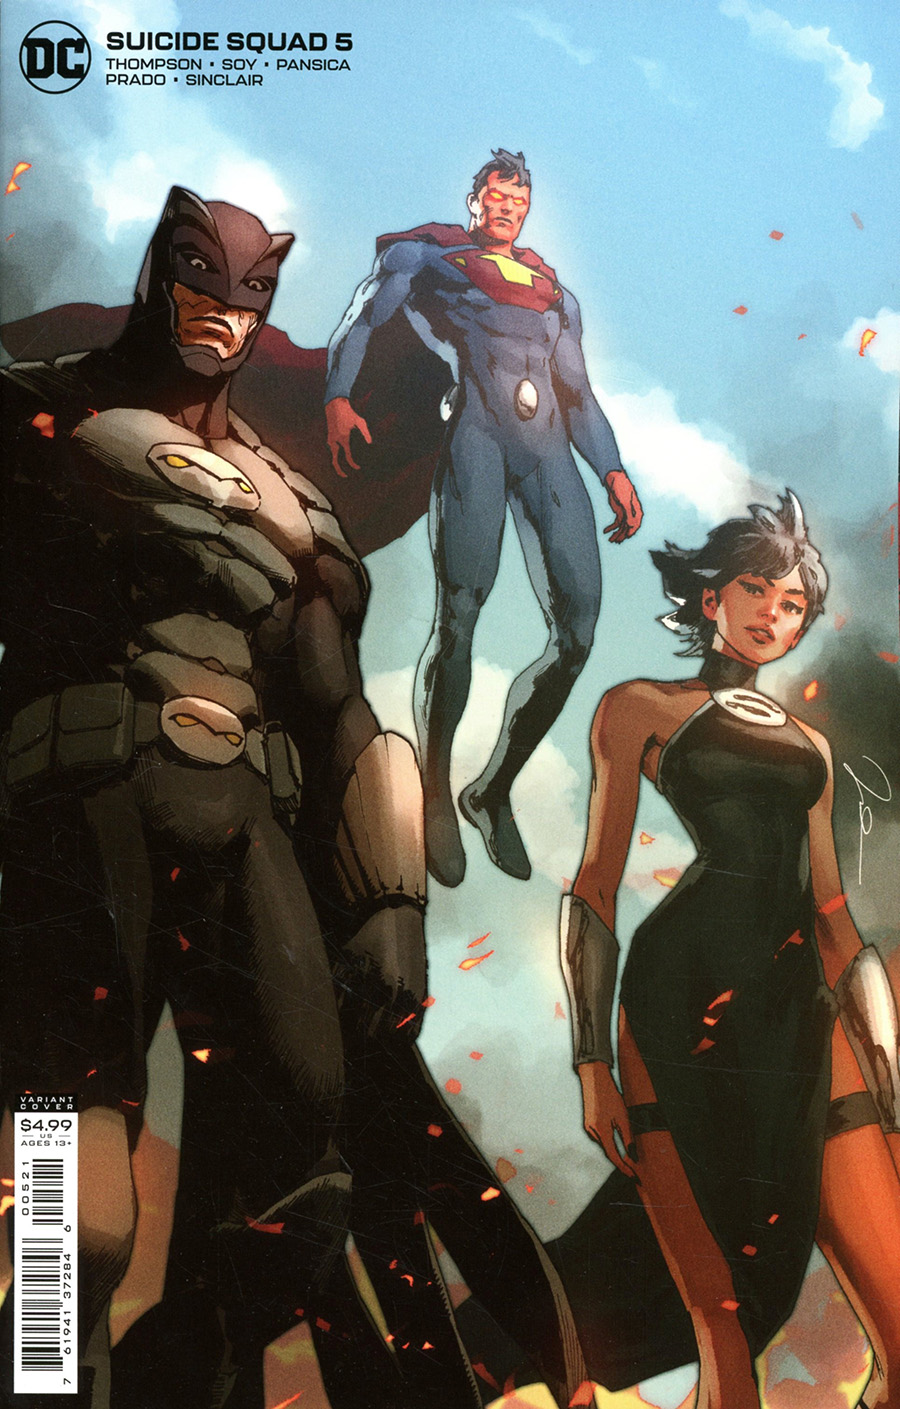 Suicide Squad Vol 6 #5 Cover B Variant Gerald Parel Card Stock Cover